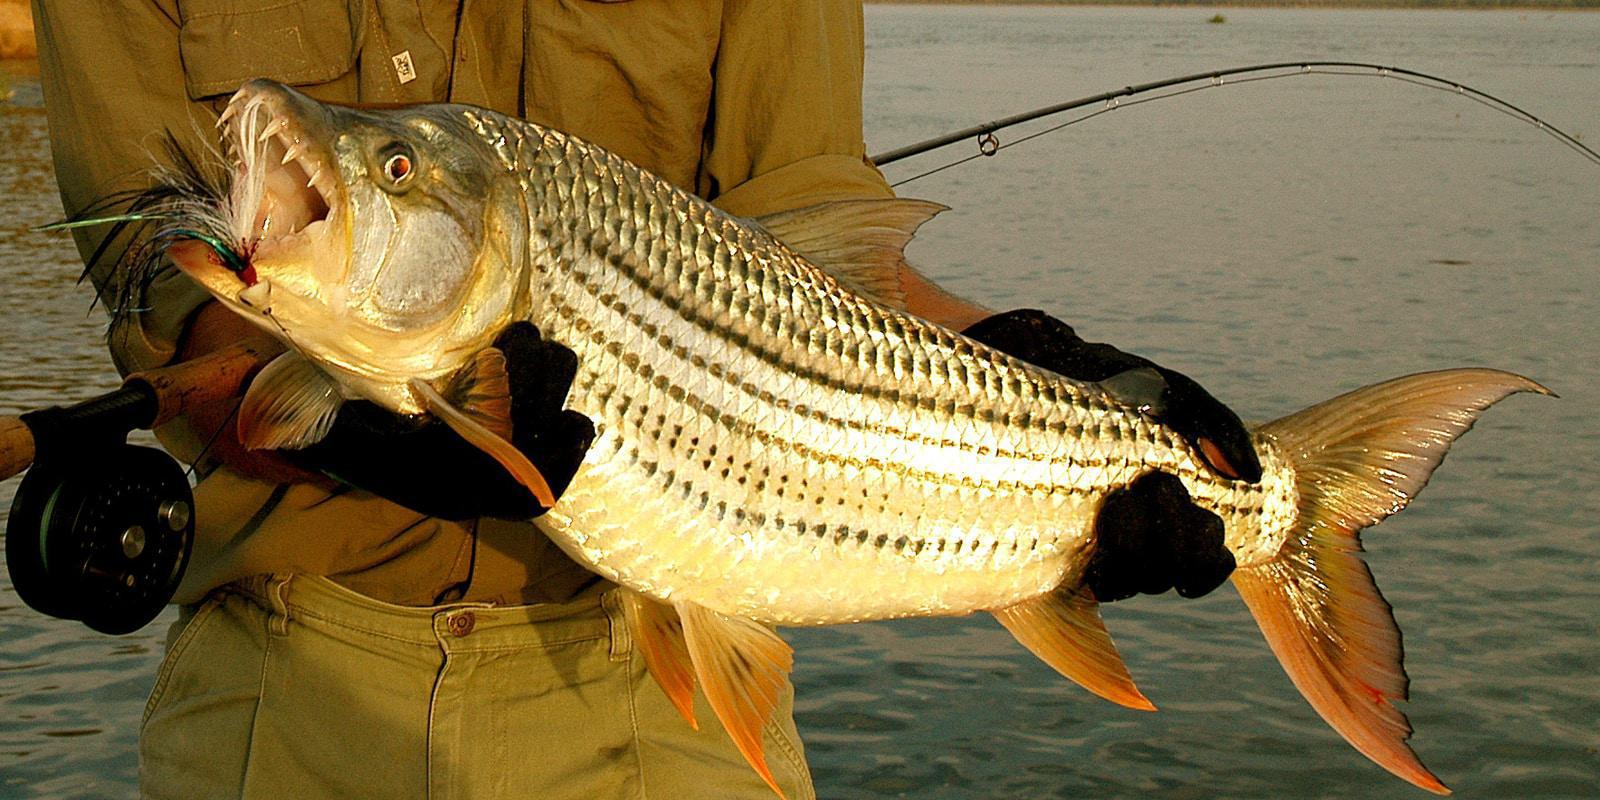 Tigerfish at Chiawa Camp